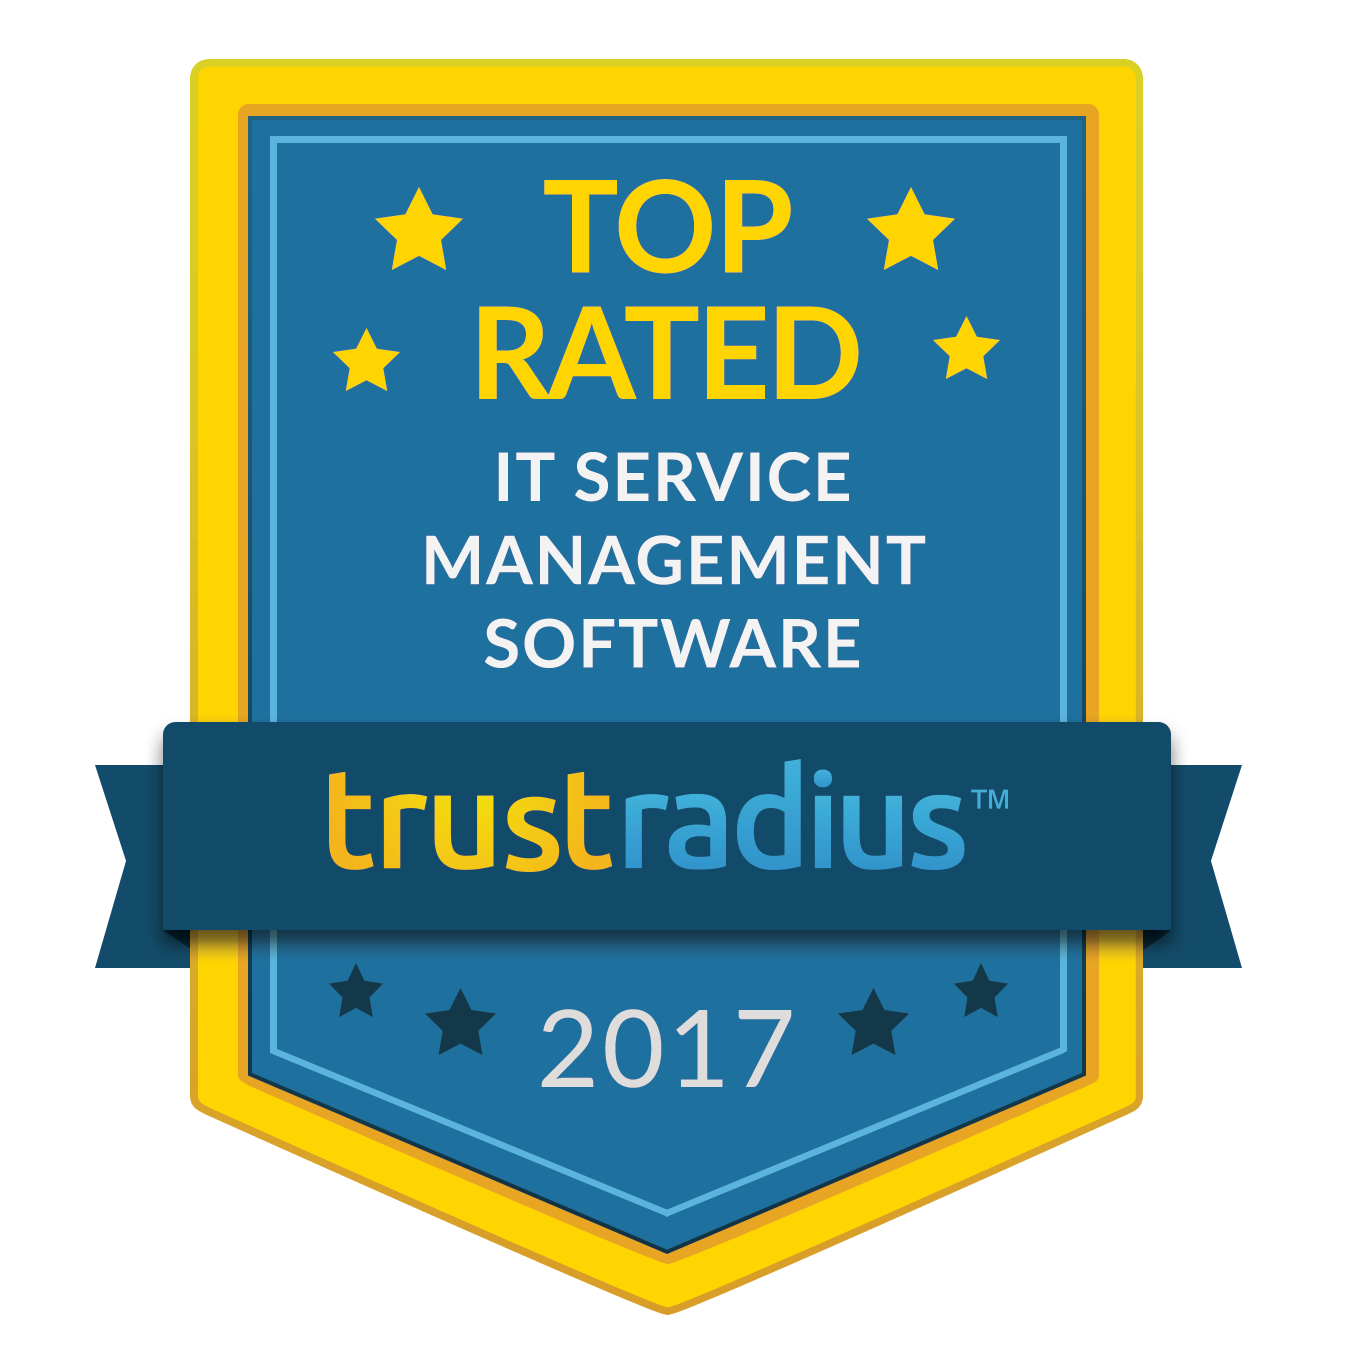 Top Rated IT Service Management Software on TrustRadius